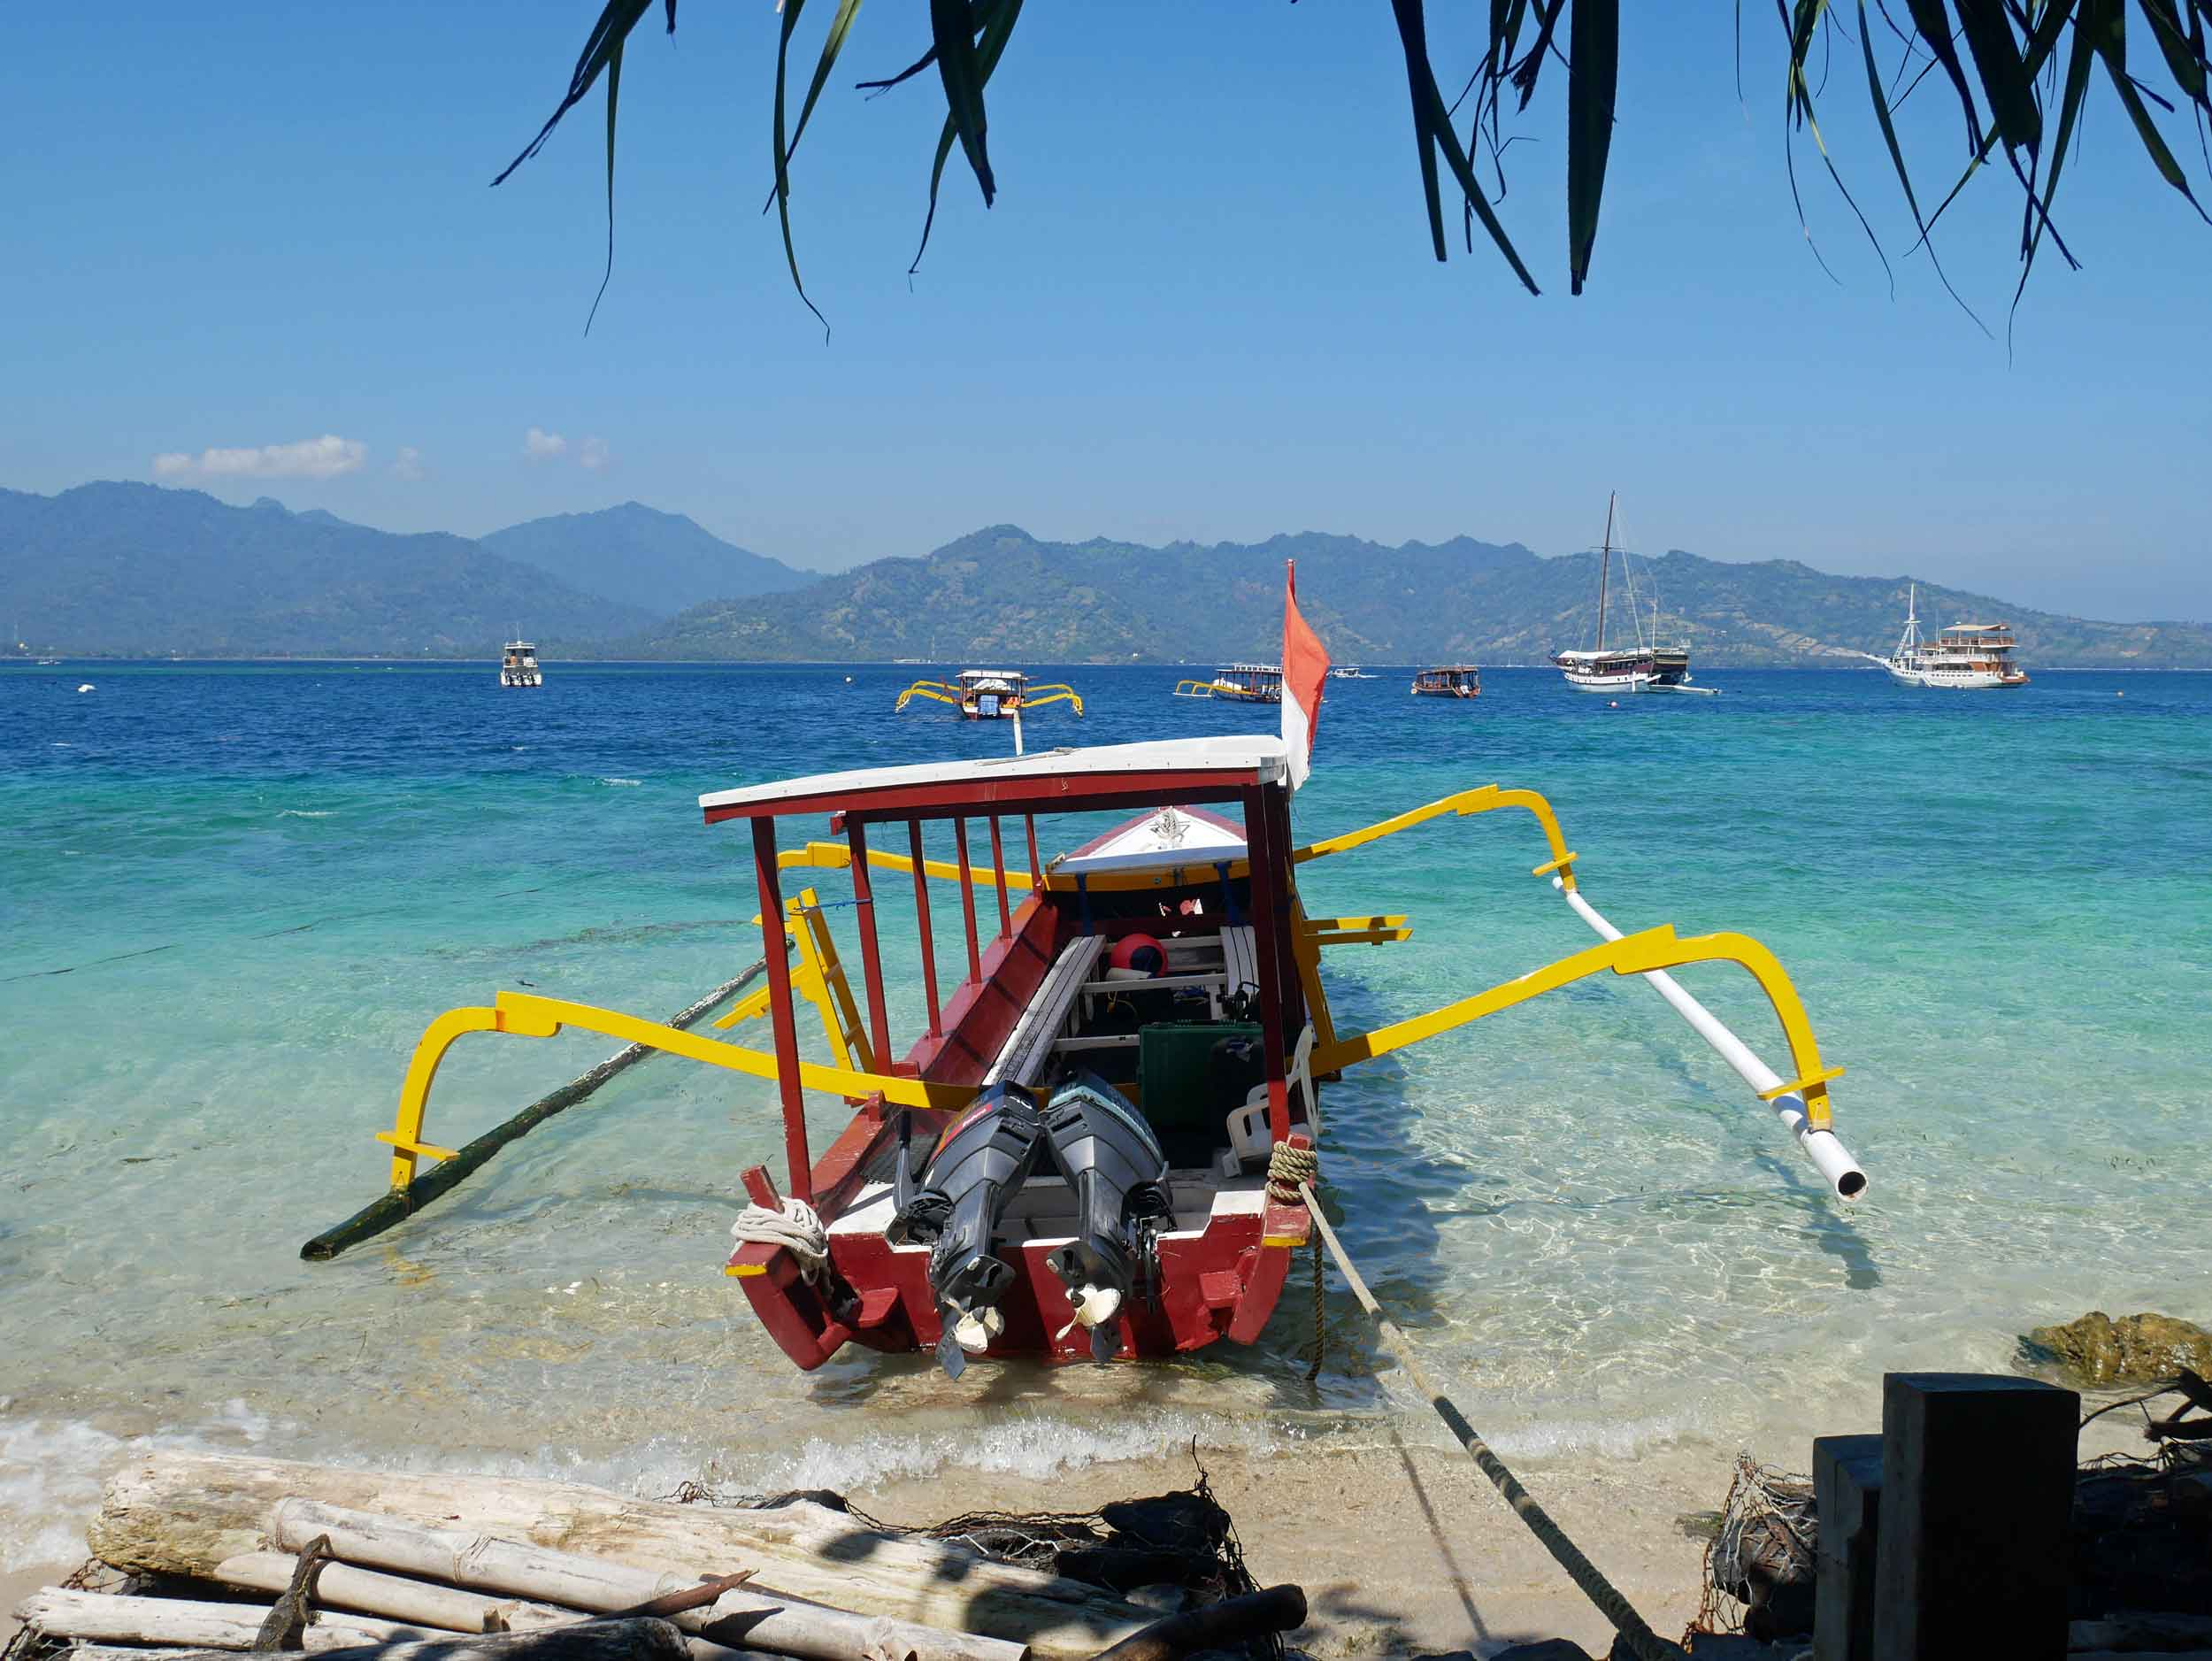 We loved the unique shapes and bold colors of these traditional Indonesian fishing boats.